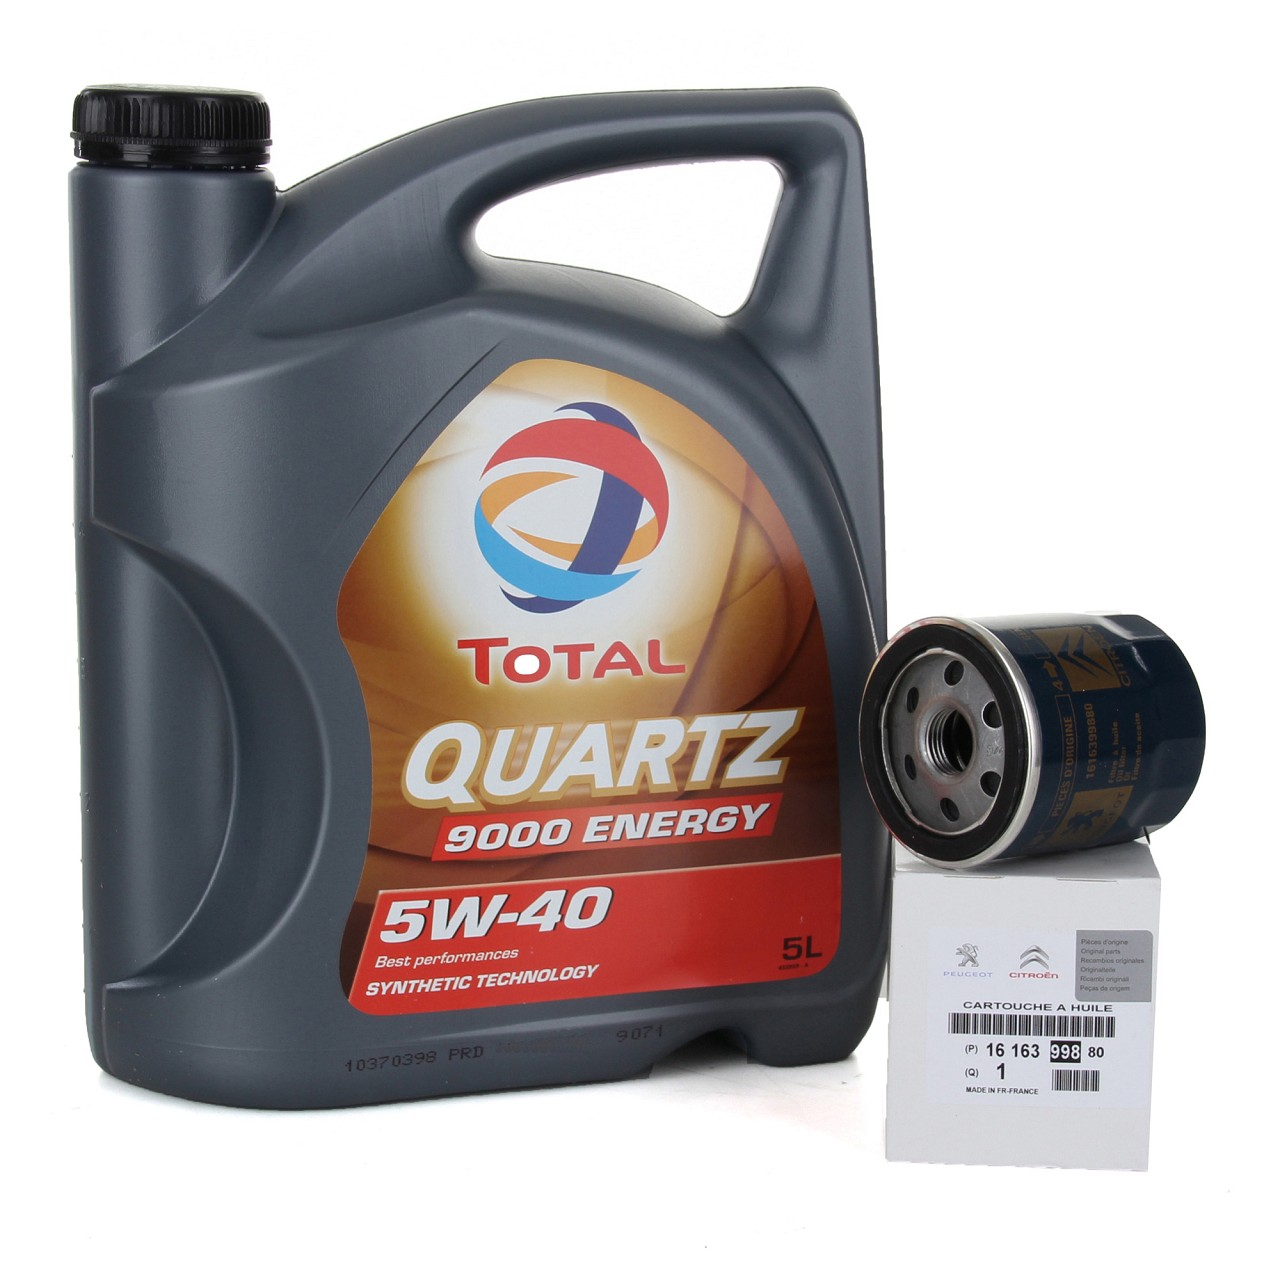 TOTAL QUARTZ 9000 ENERGY 5W-40 5 L + ORIGINAL Ölfilter C1 107 1.0 1616399880